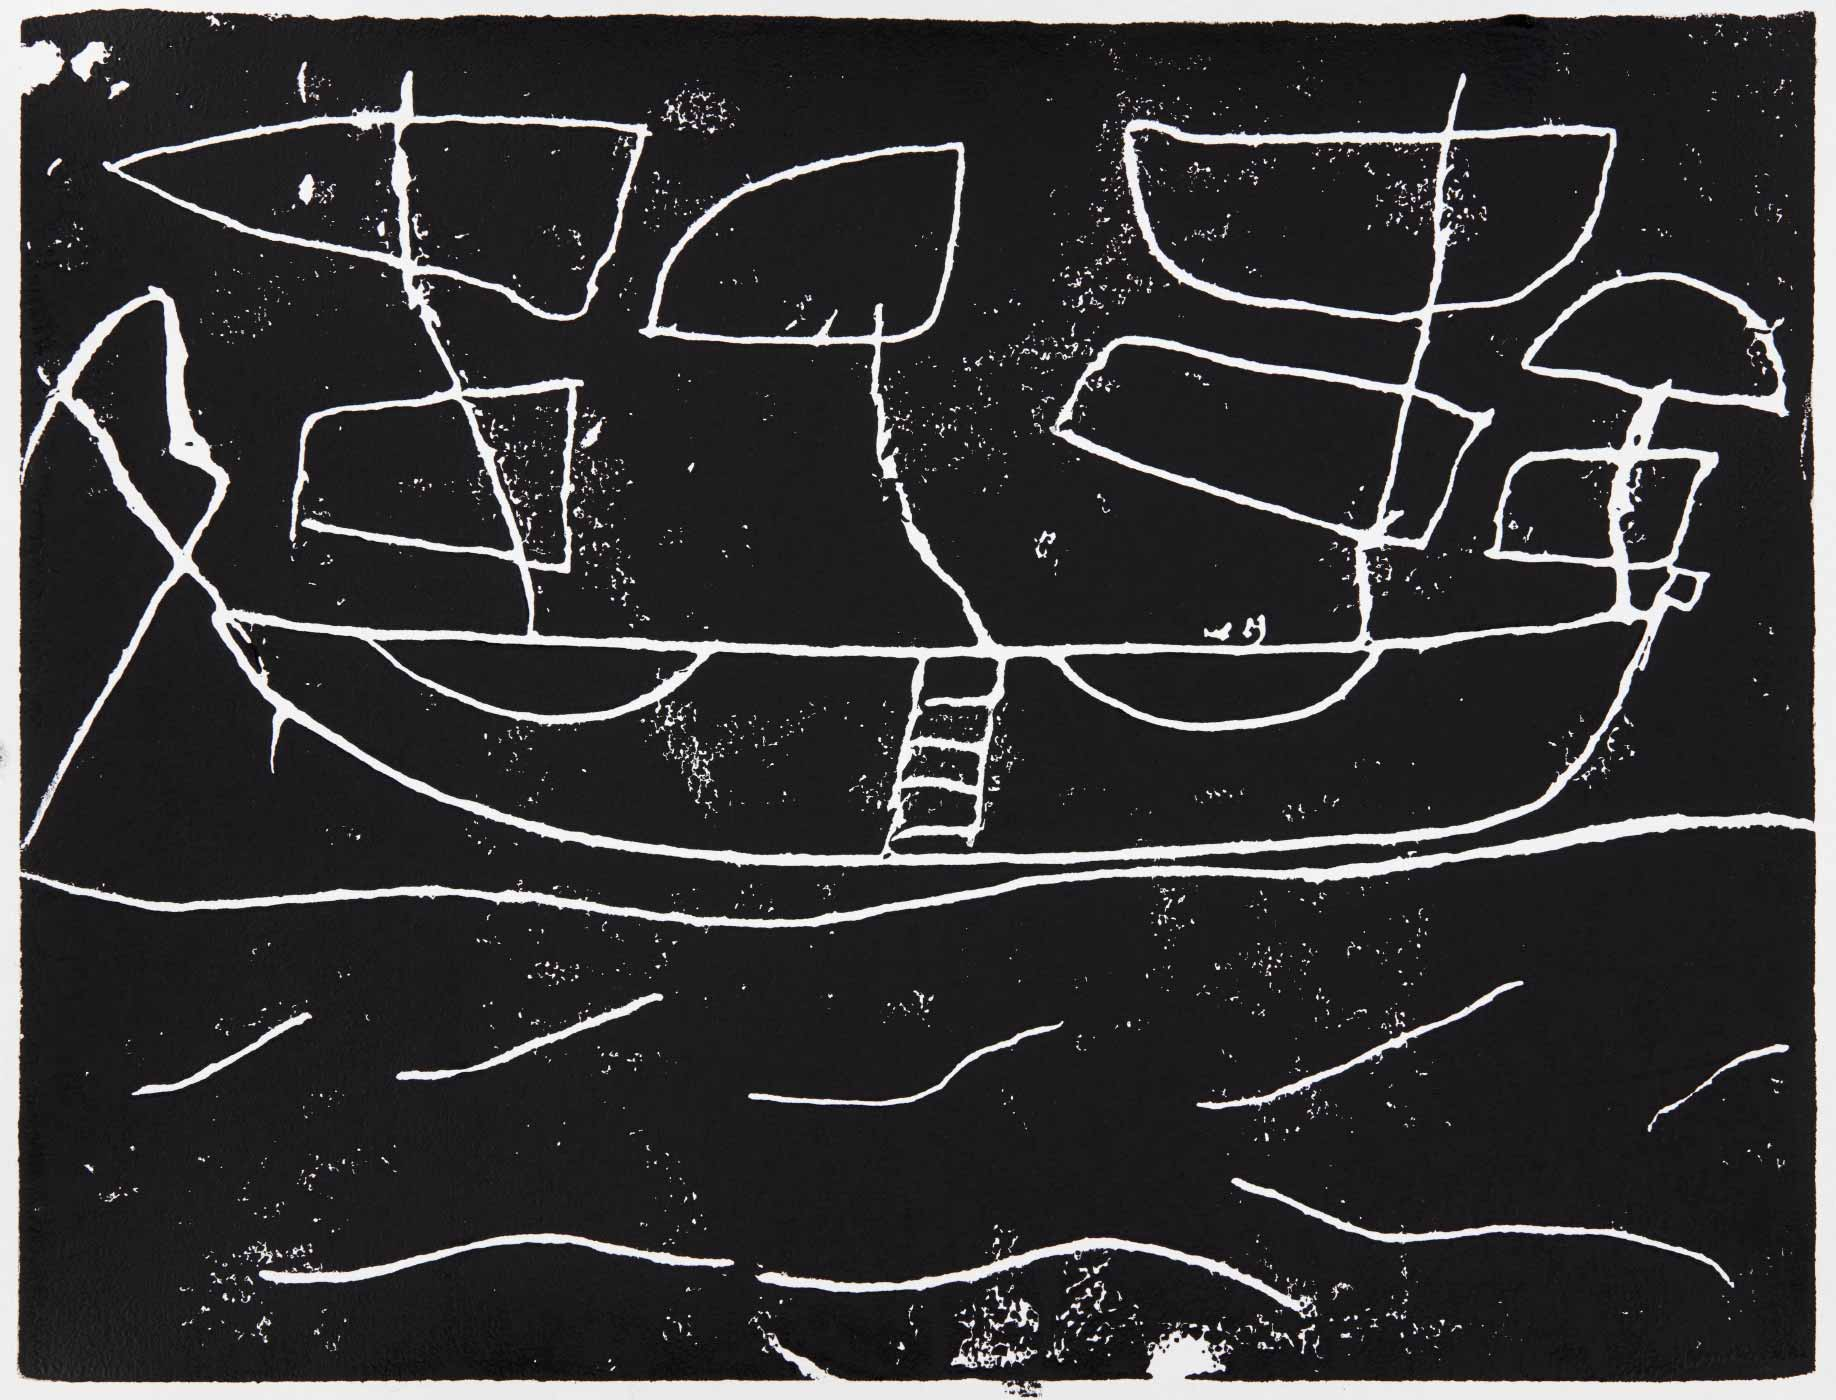 Print, black ink on white paper, depicting a sailing ship. Annotated in pencil 'Georgia'. - click to view larger image